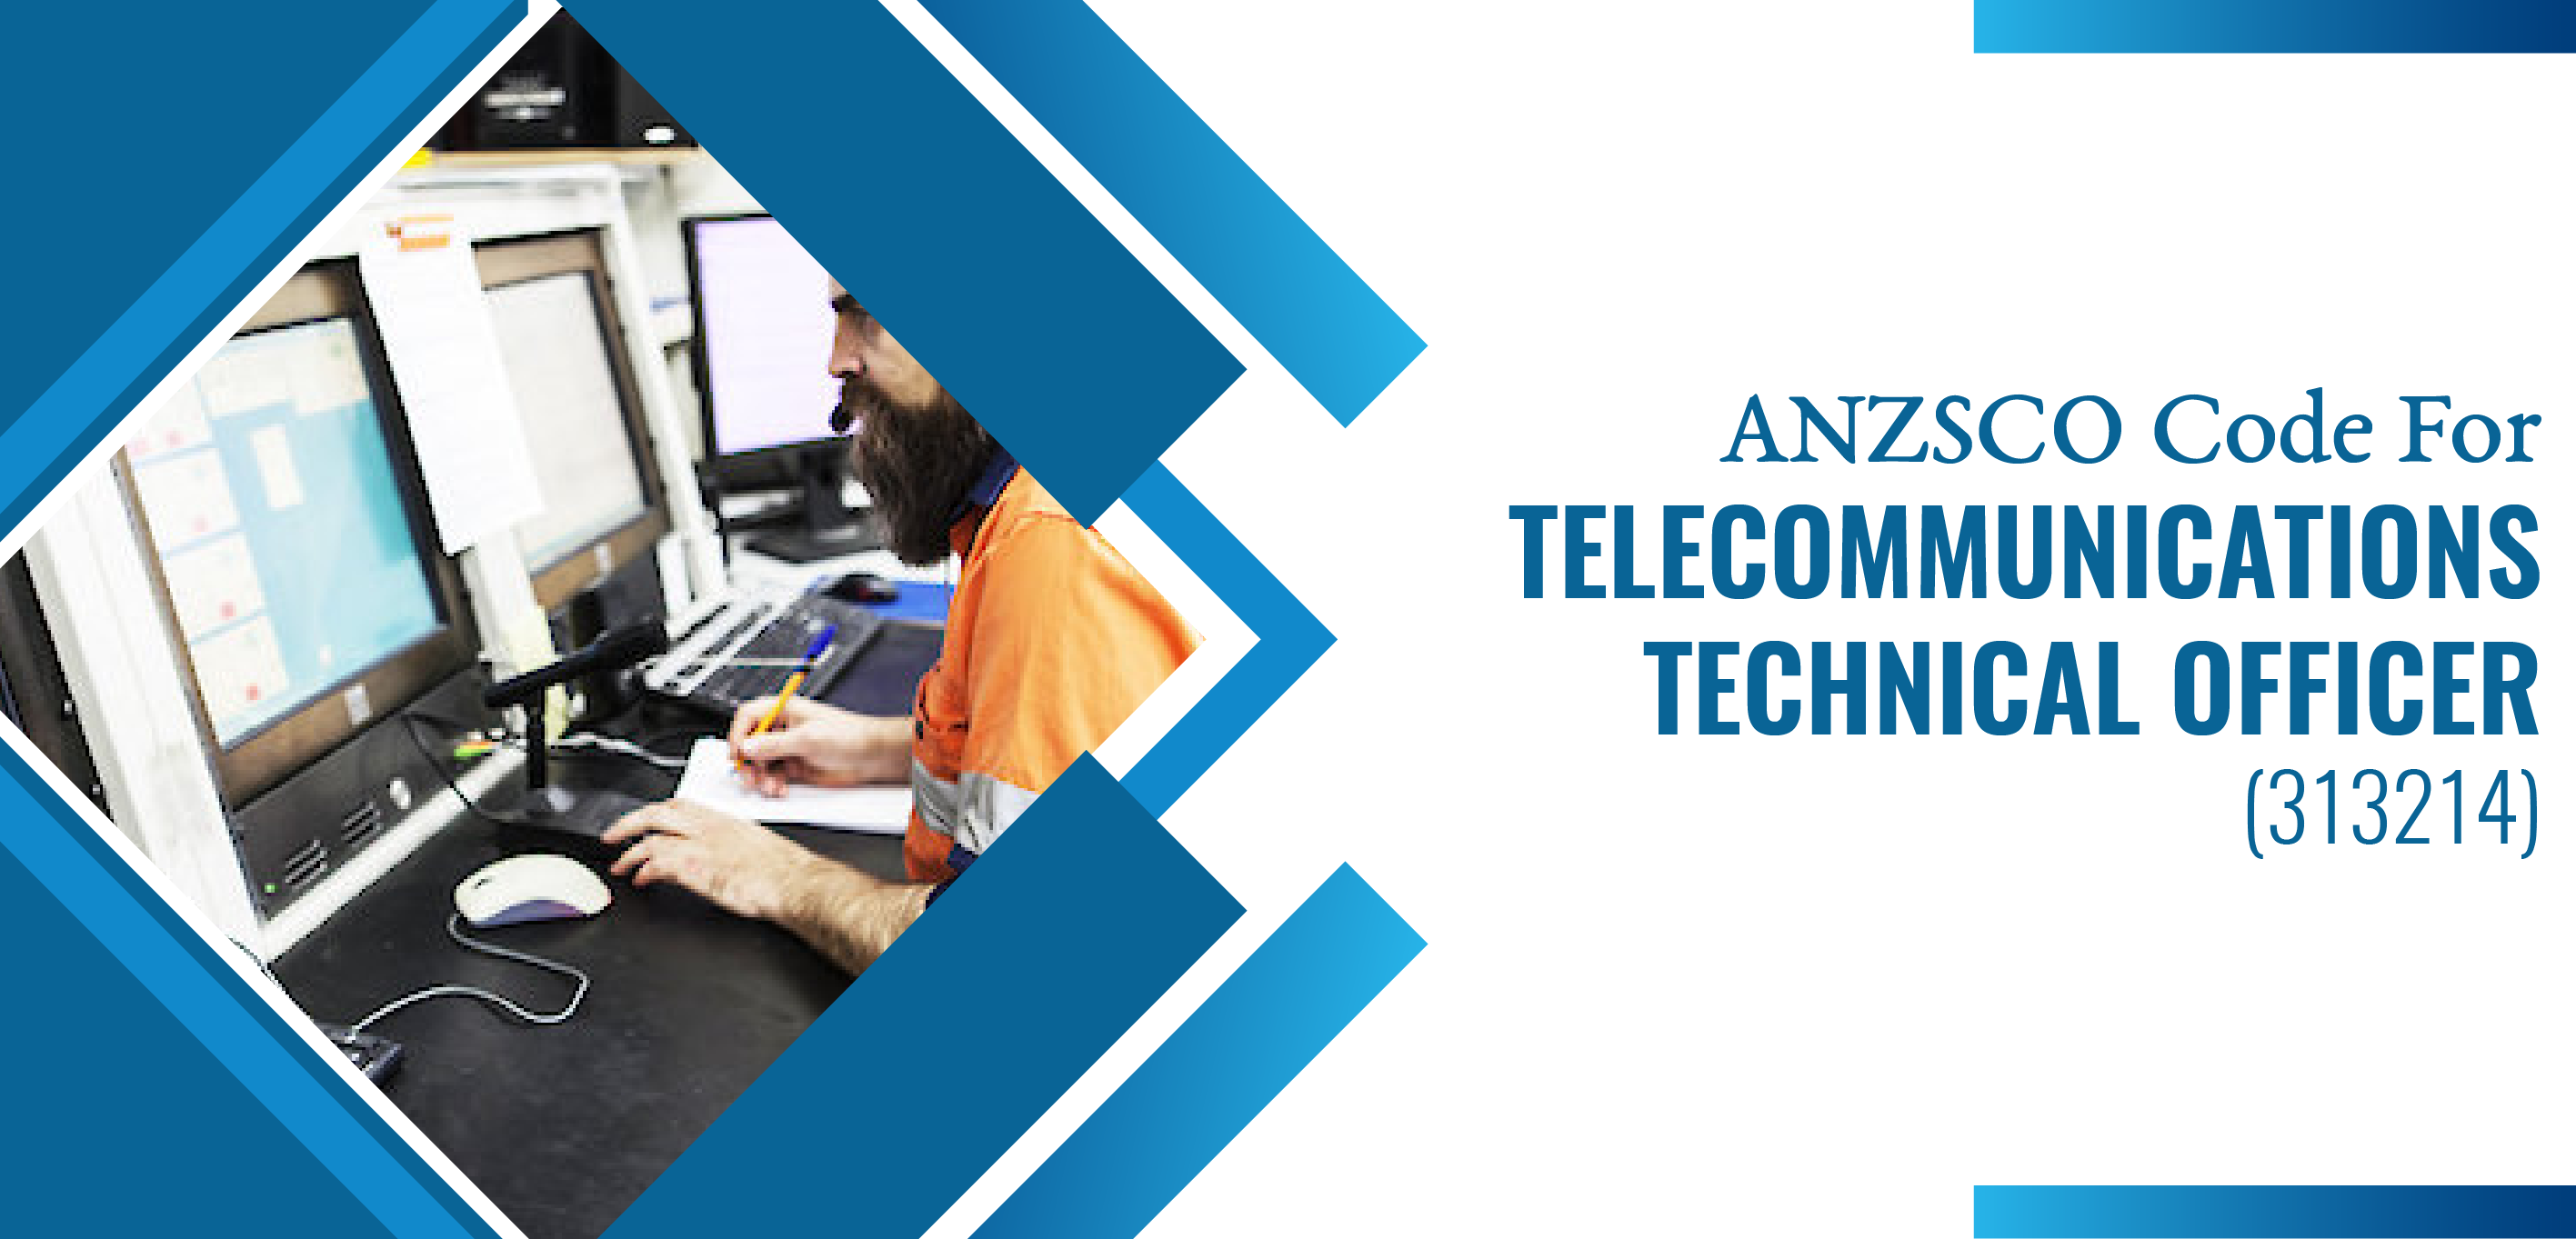 Telecommunications Technical Officer ANZSCO